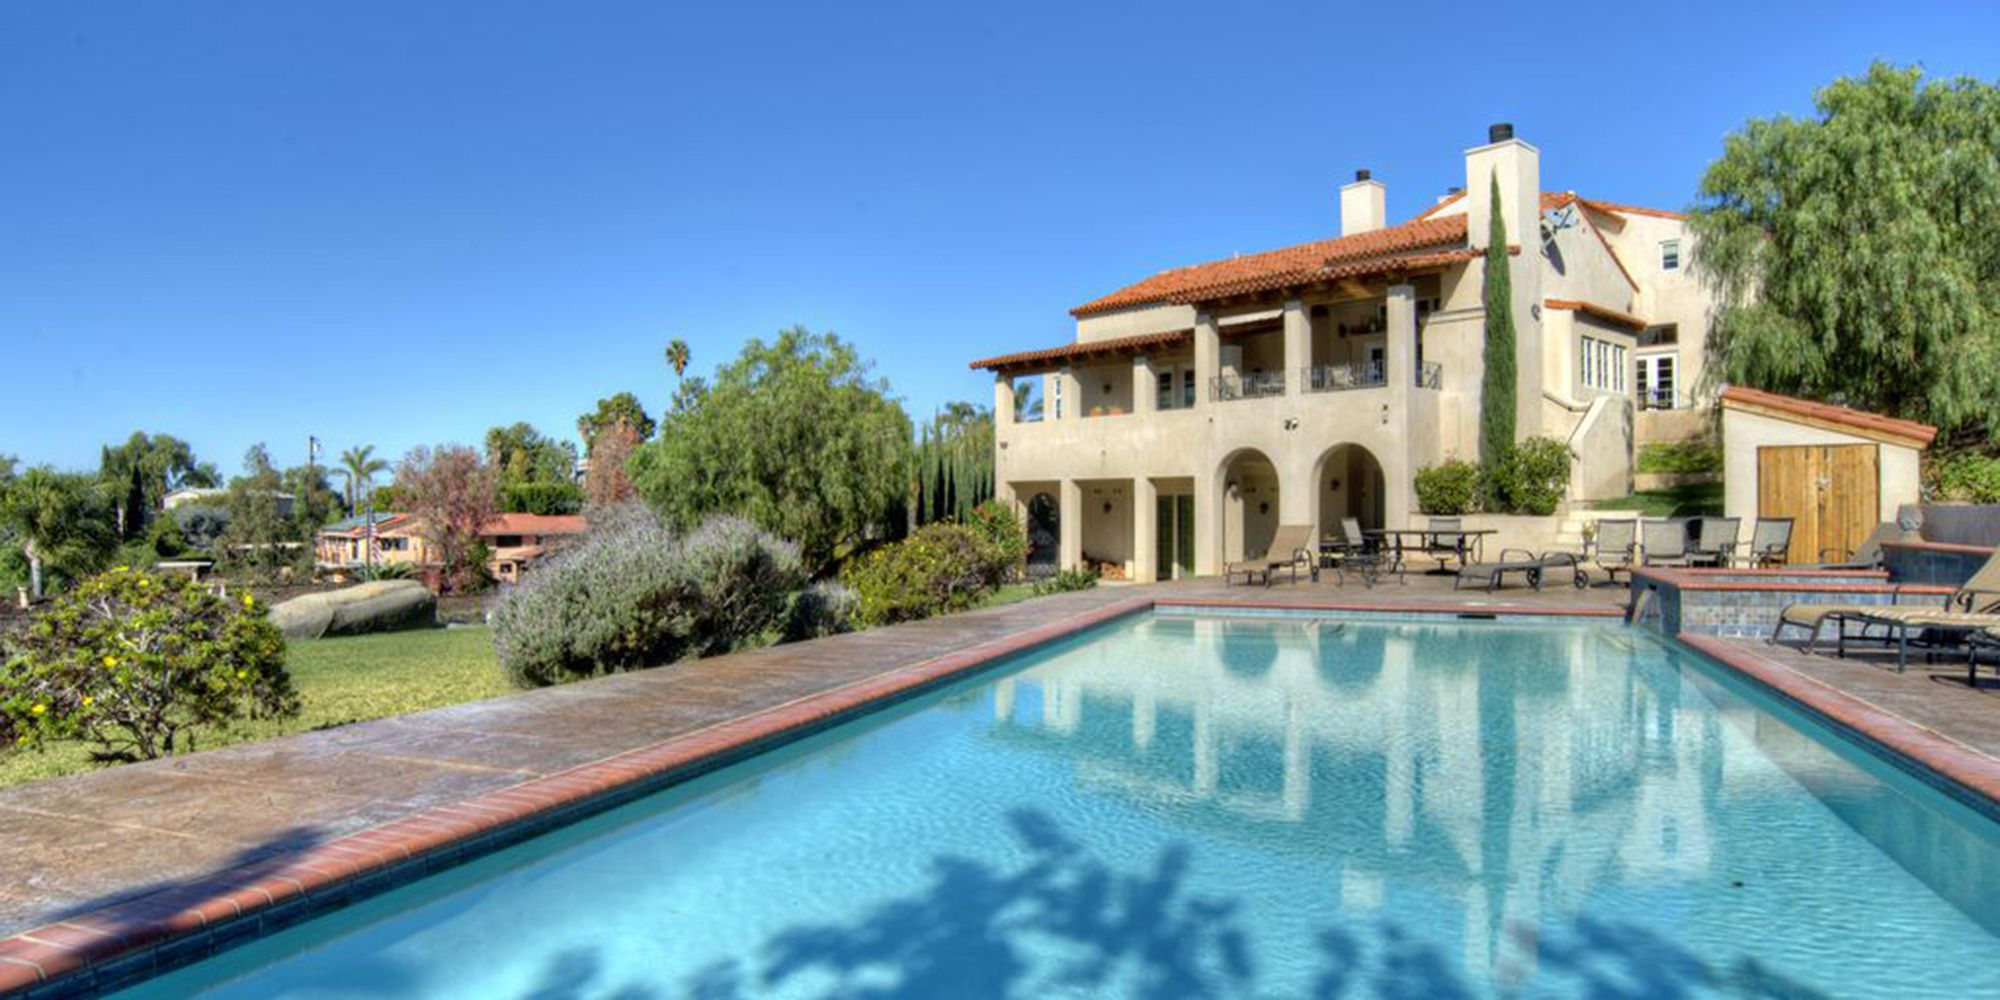 private indoor pool vacation home rentals near me